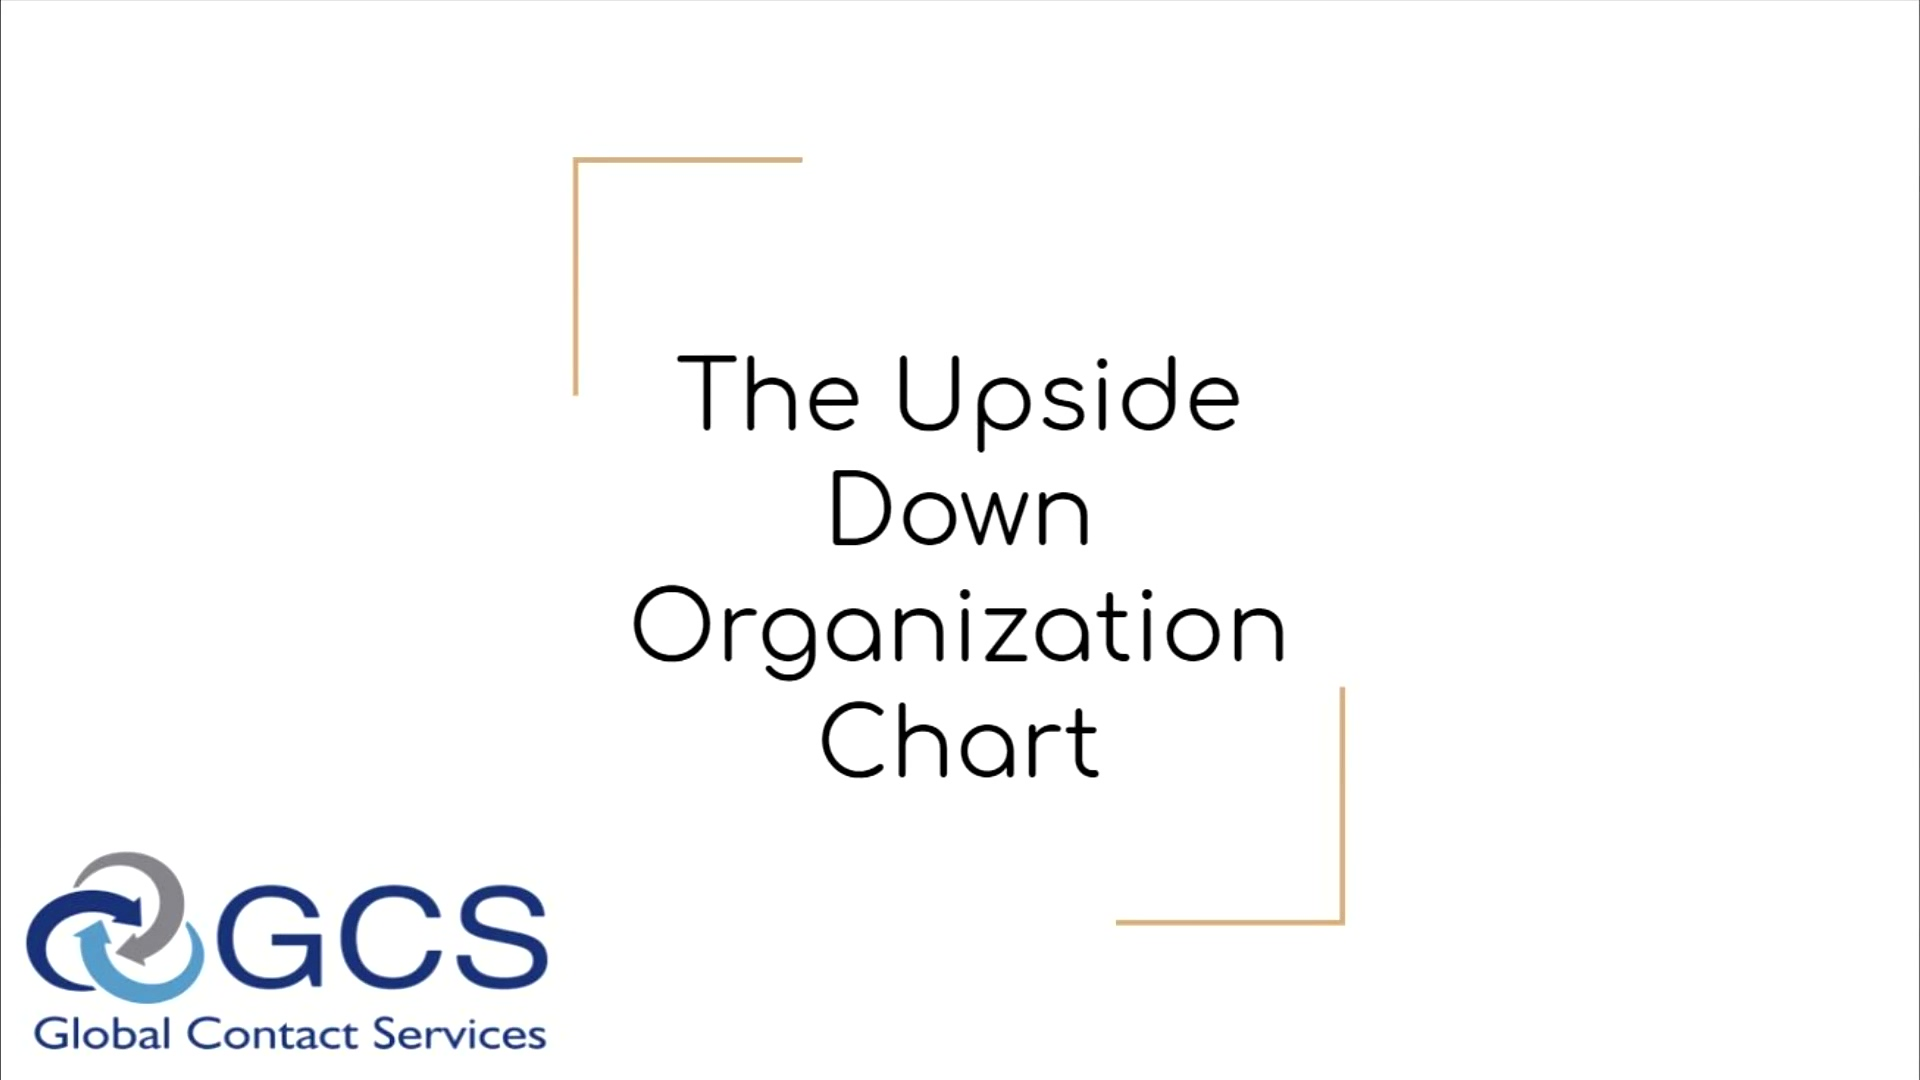 The Upside Down Organization Chart